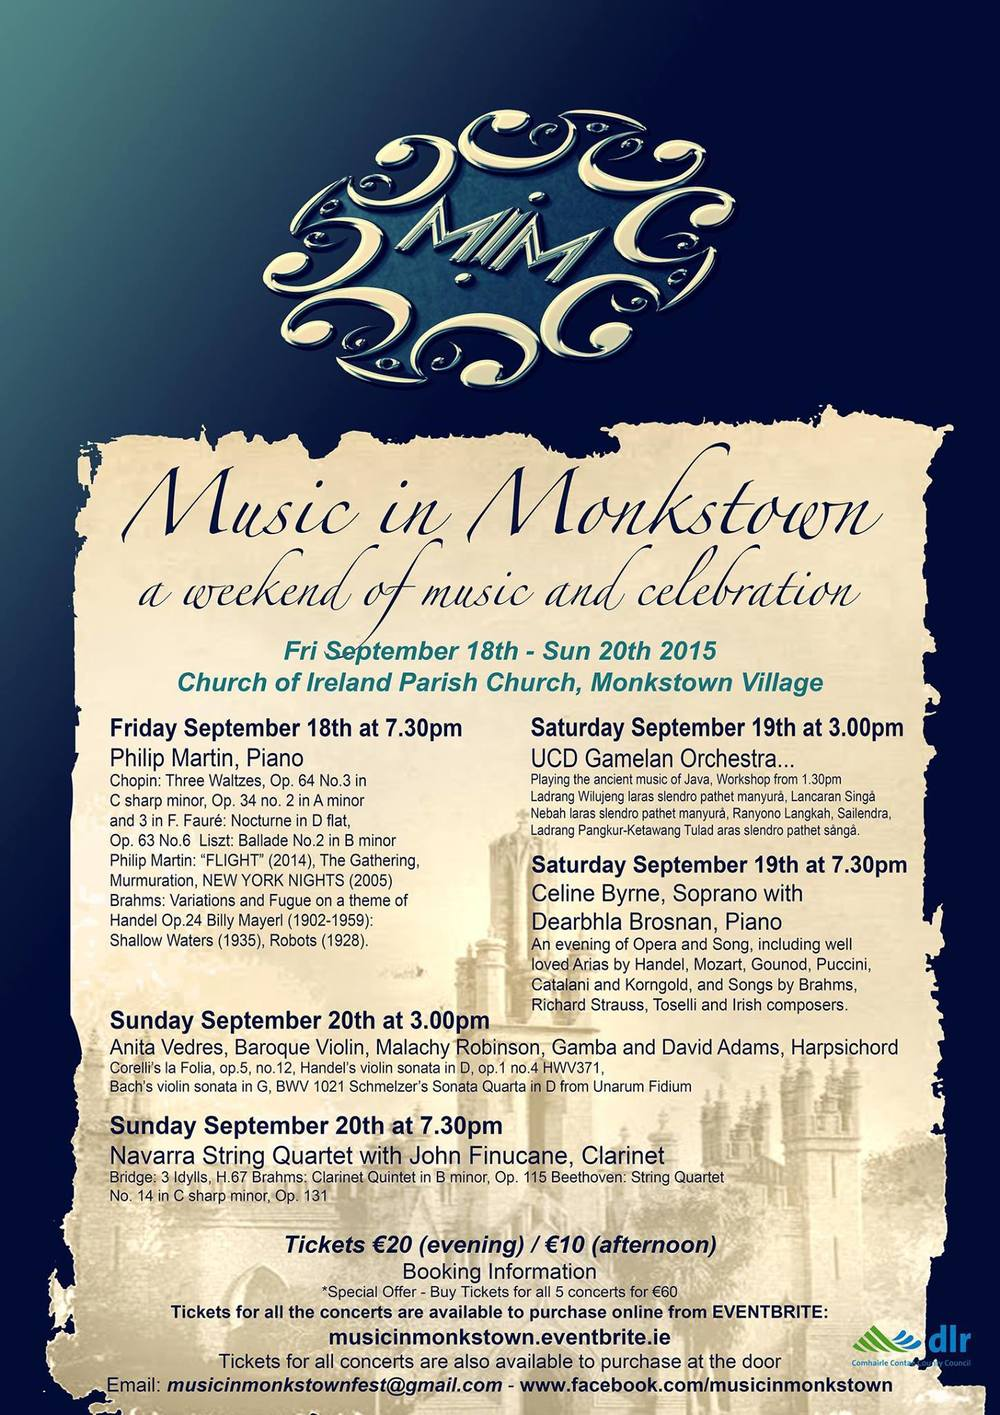 Music in Monkstown Programme.